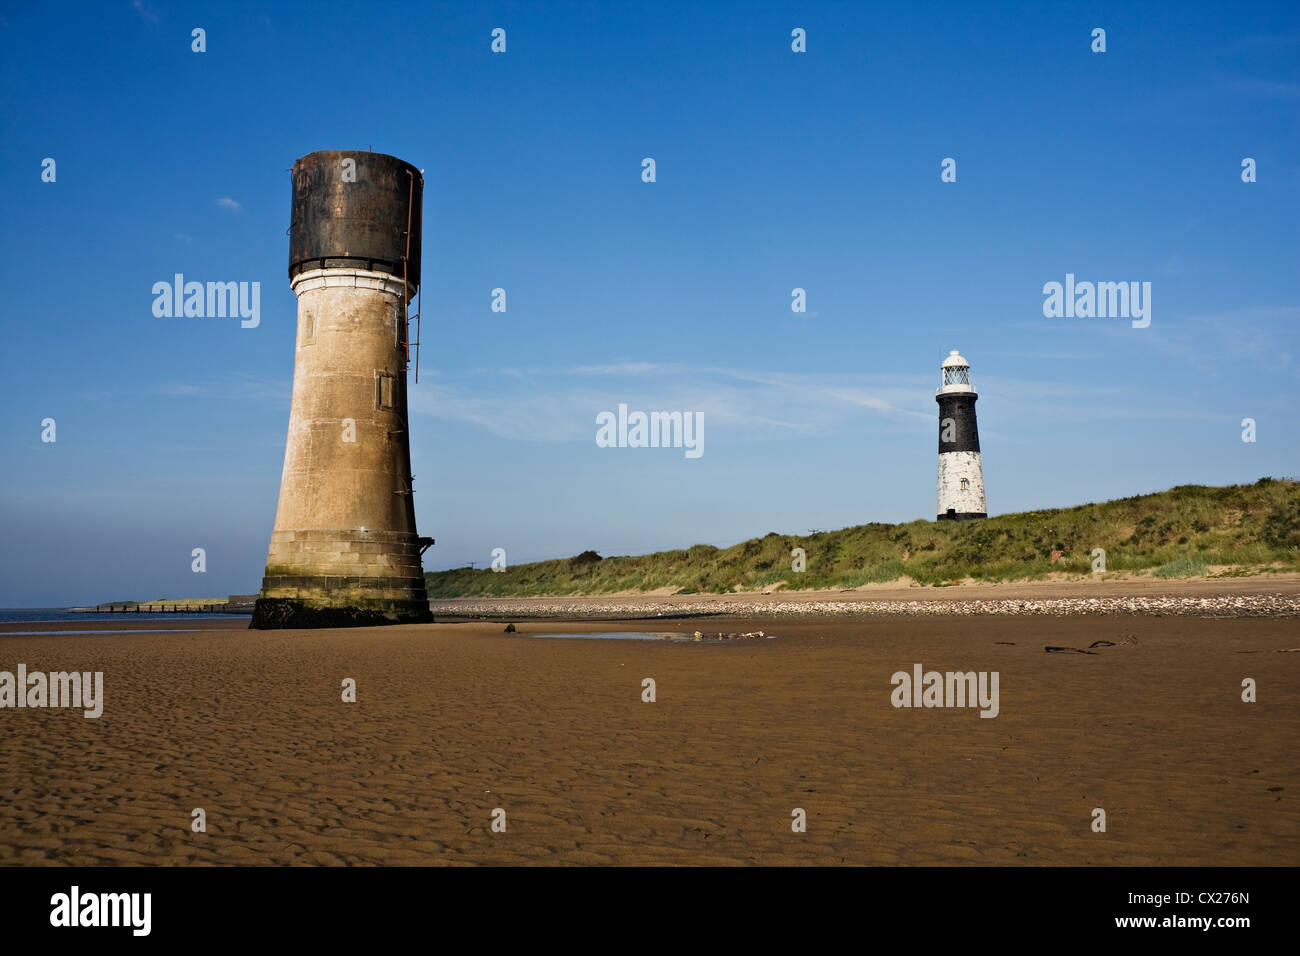 Portrait photo showing Spurn Lowlight and Spurn lighthouse from the perspective of the beach, facing the mainland. - Stock Image